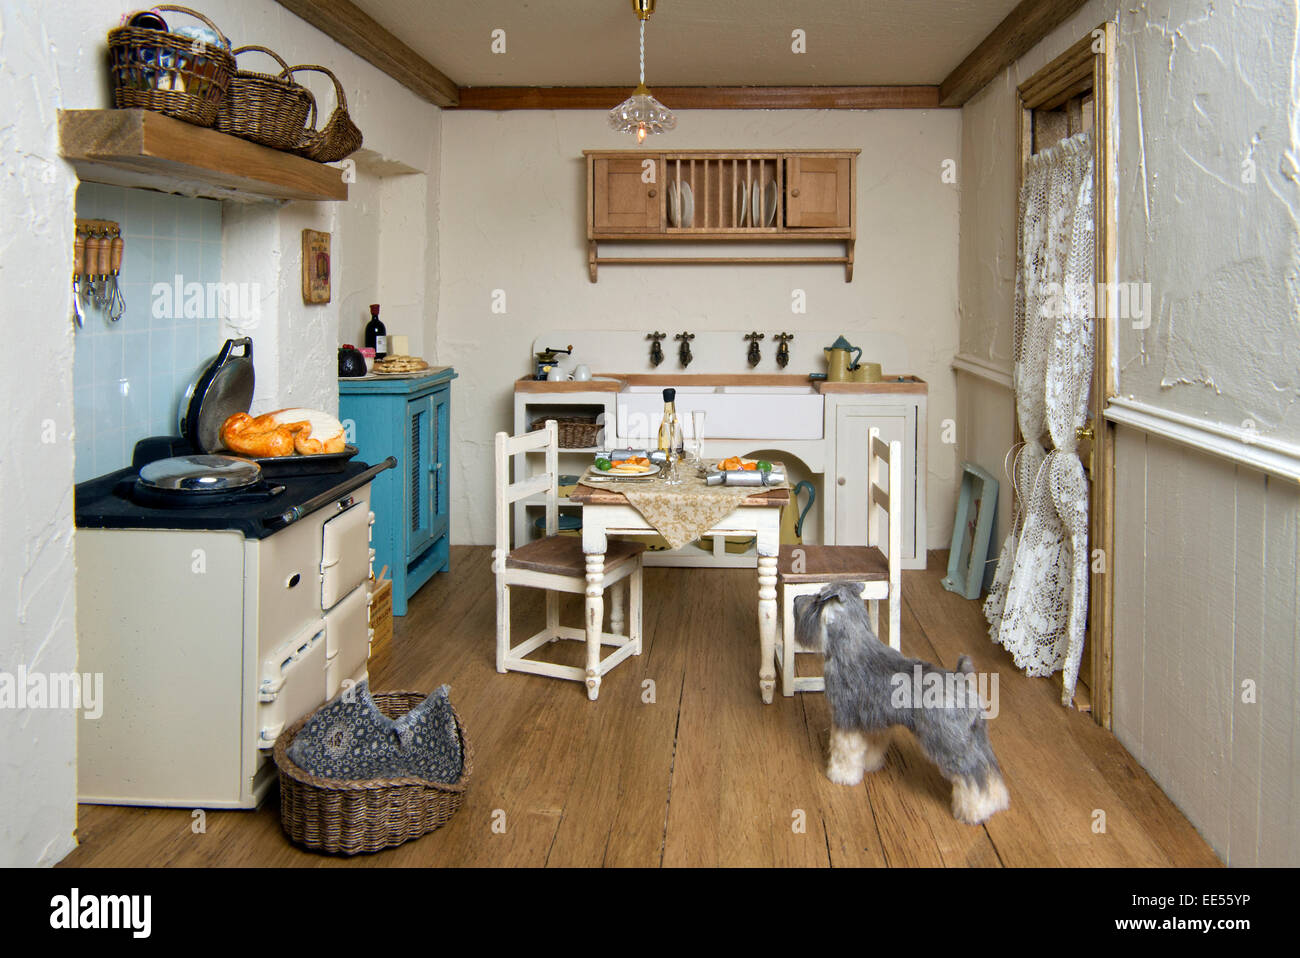 Captivating Dolls House Interiors Pictures - Image design house plan ...